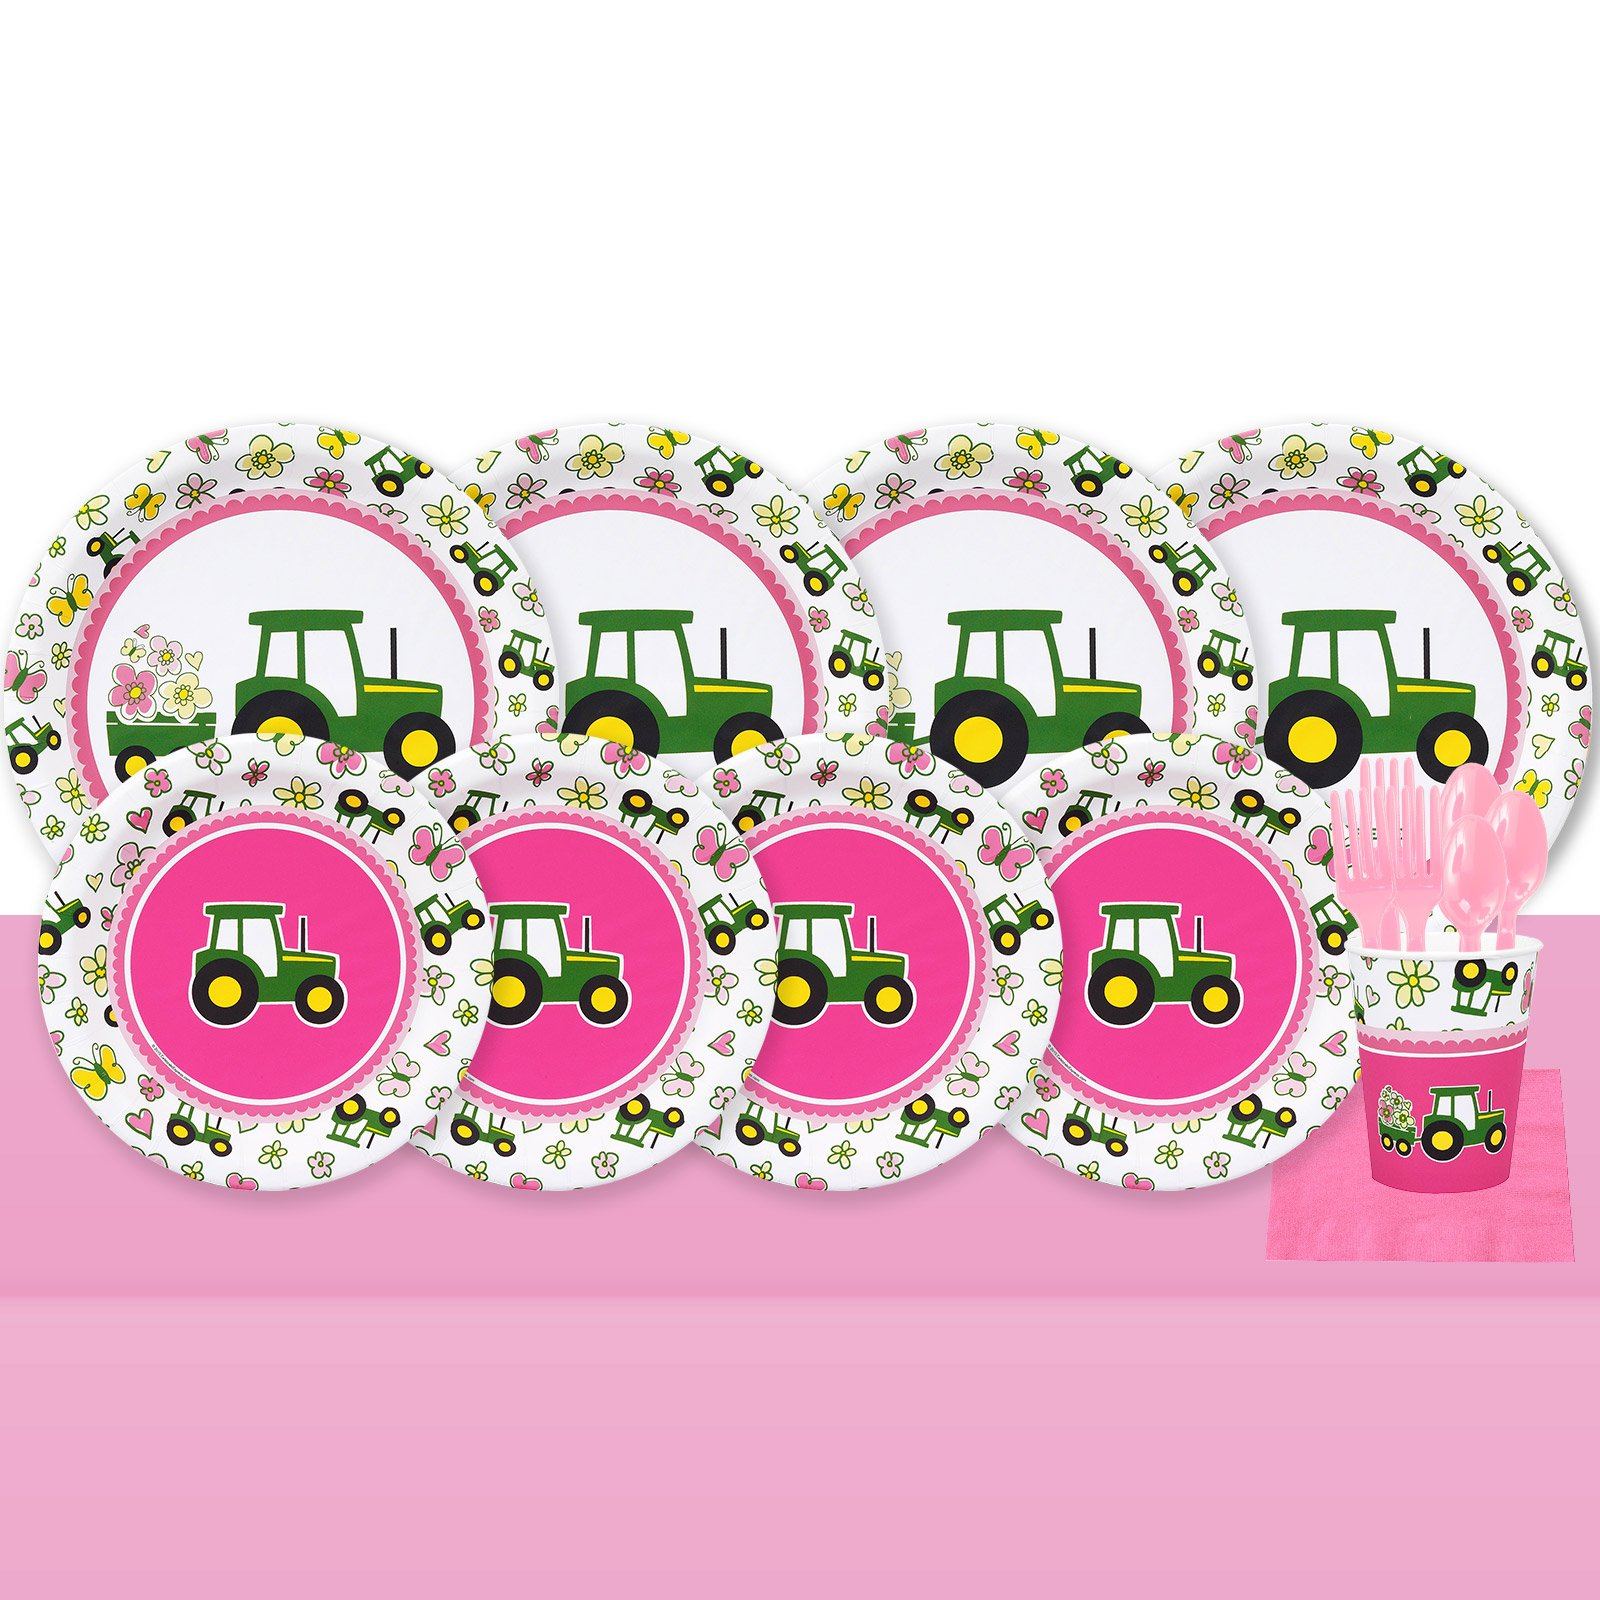 John Deere Pink 32 Guest Party Pack by Unknown